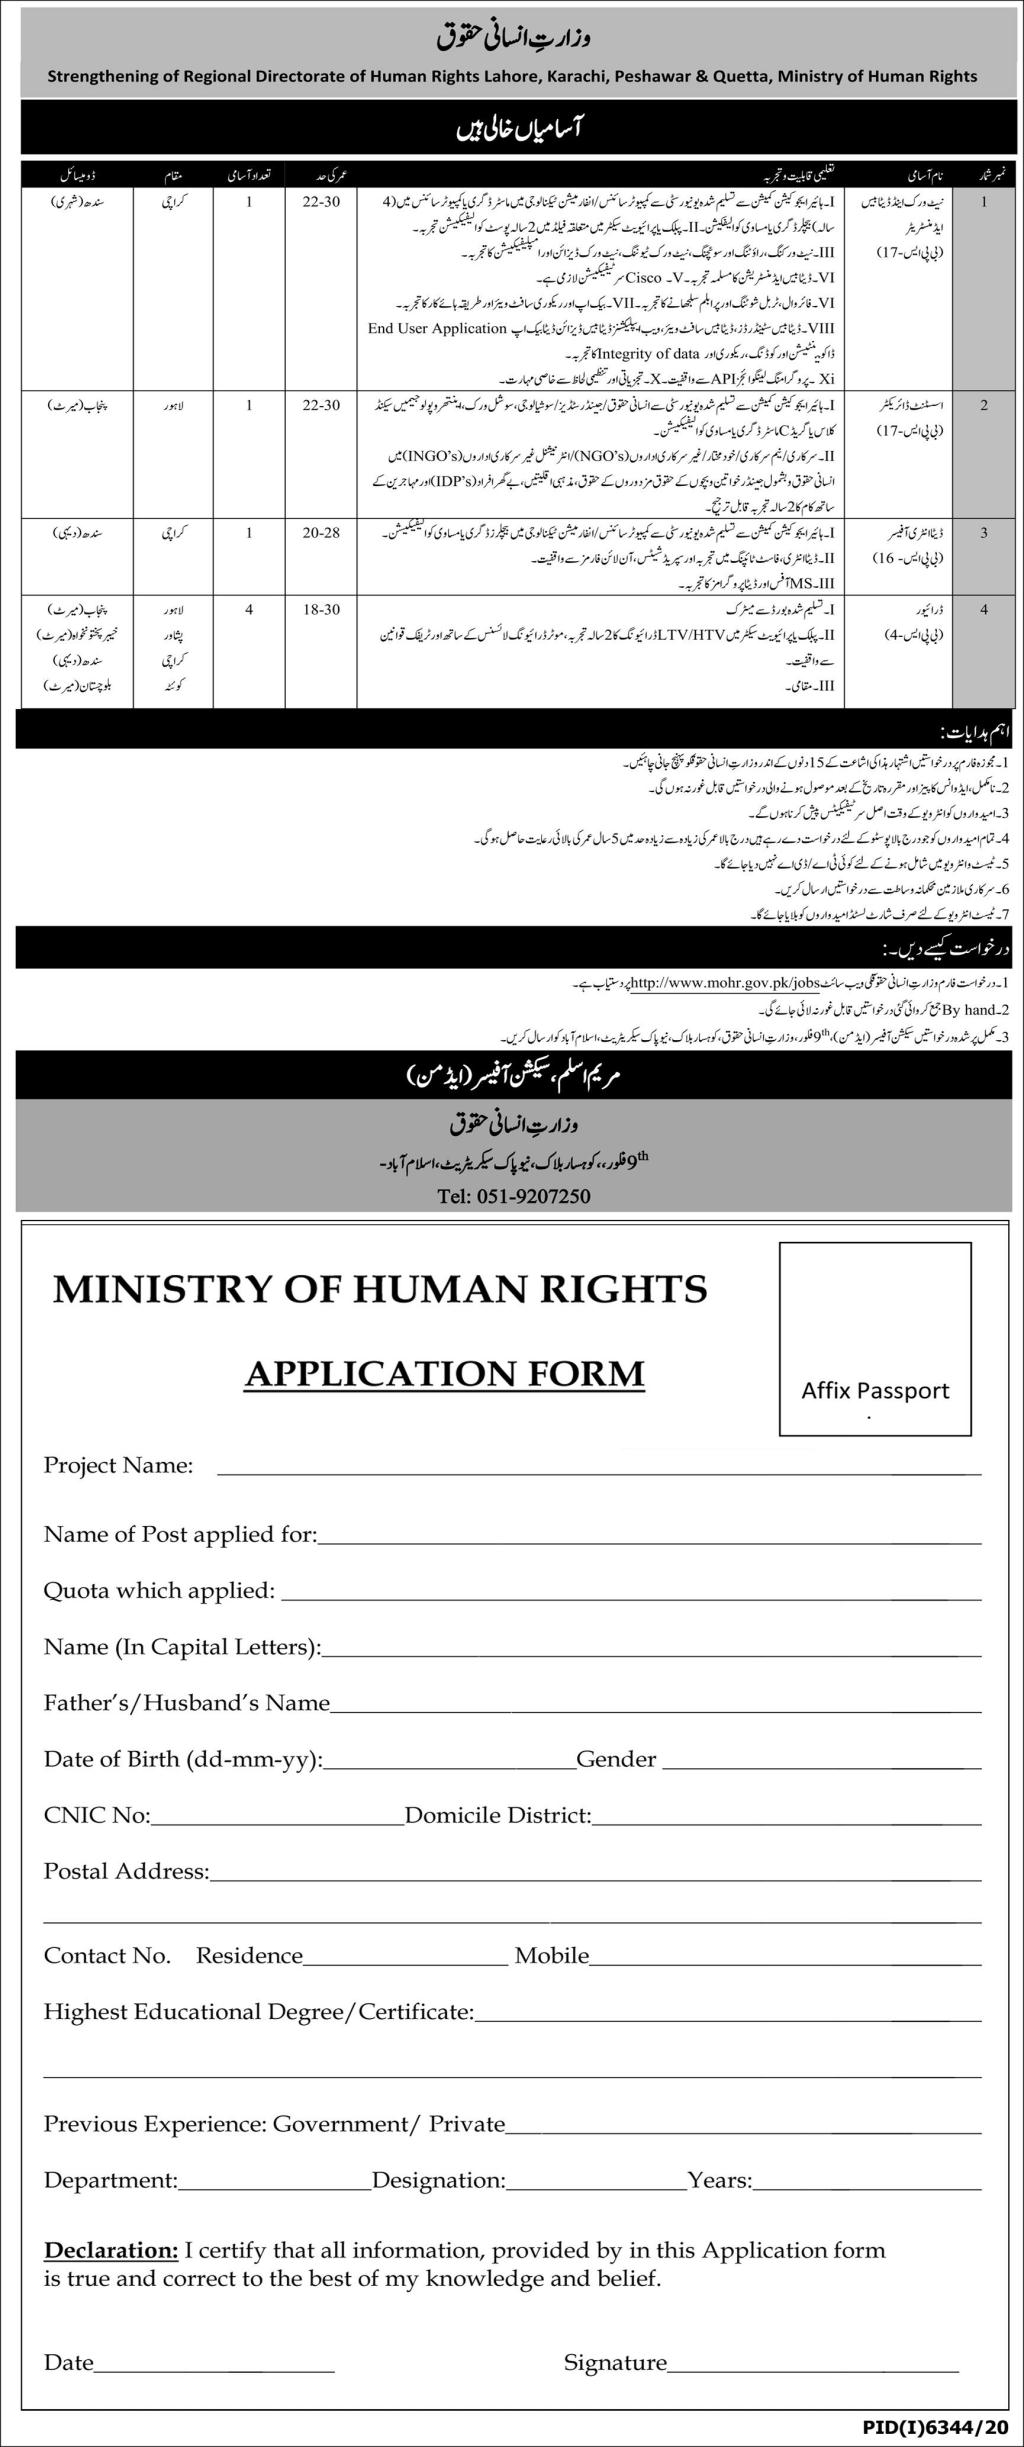 Ministry of Human Rights MOHR Jobs 2021 for Network & Database Administrator, Assistant Director, Data Entry Officer, LTV Driver and HTV Driver